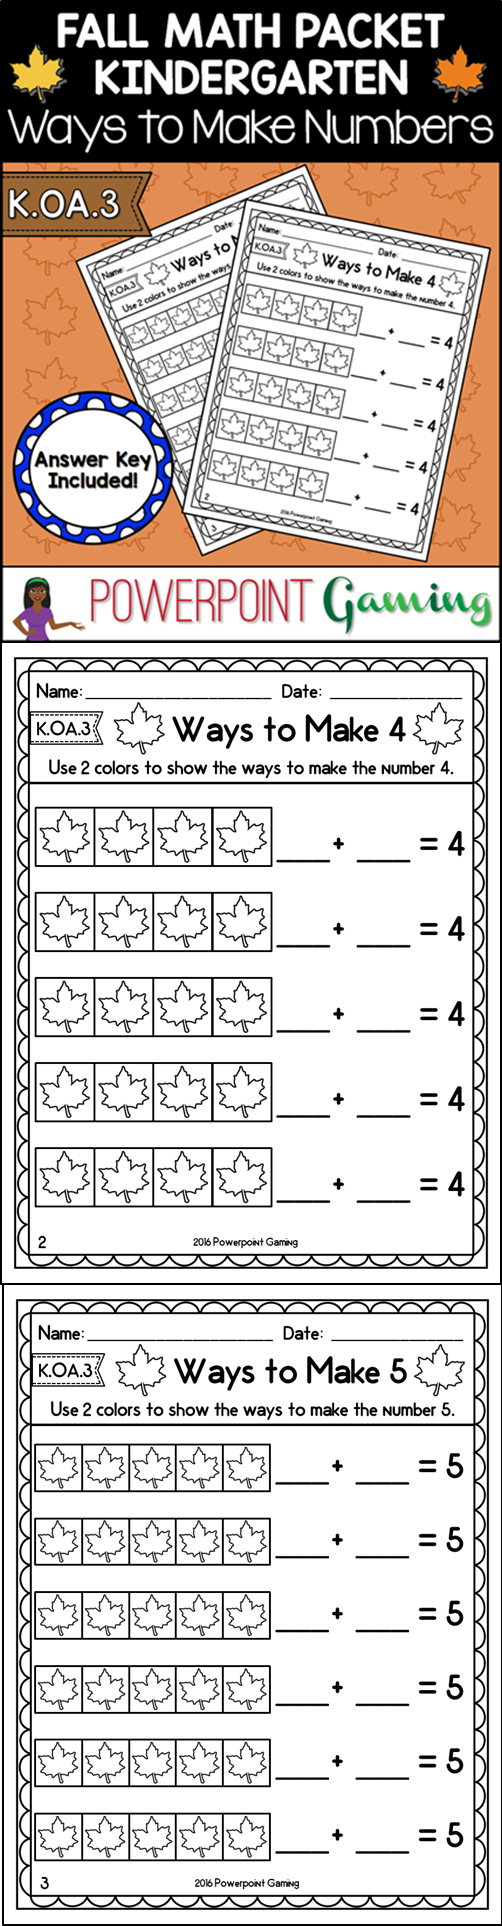 worksheet Ways To Make A Number Worksheet ways to make number fall worksheets k oa 3 equation 3